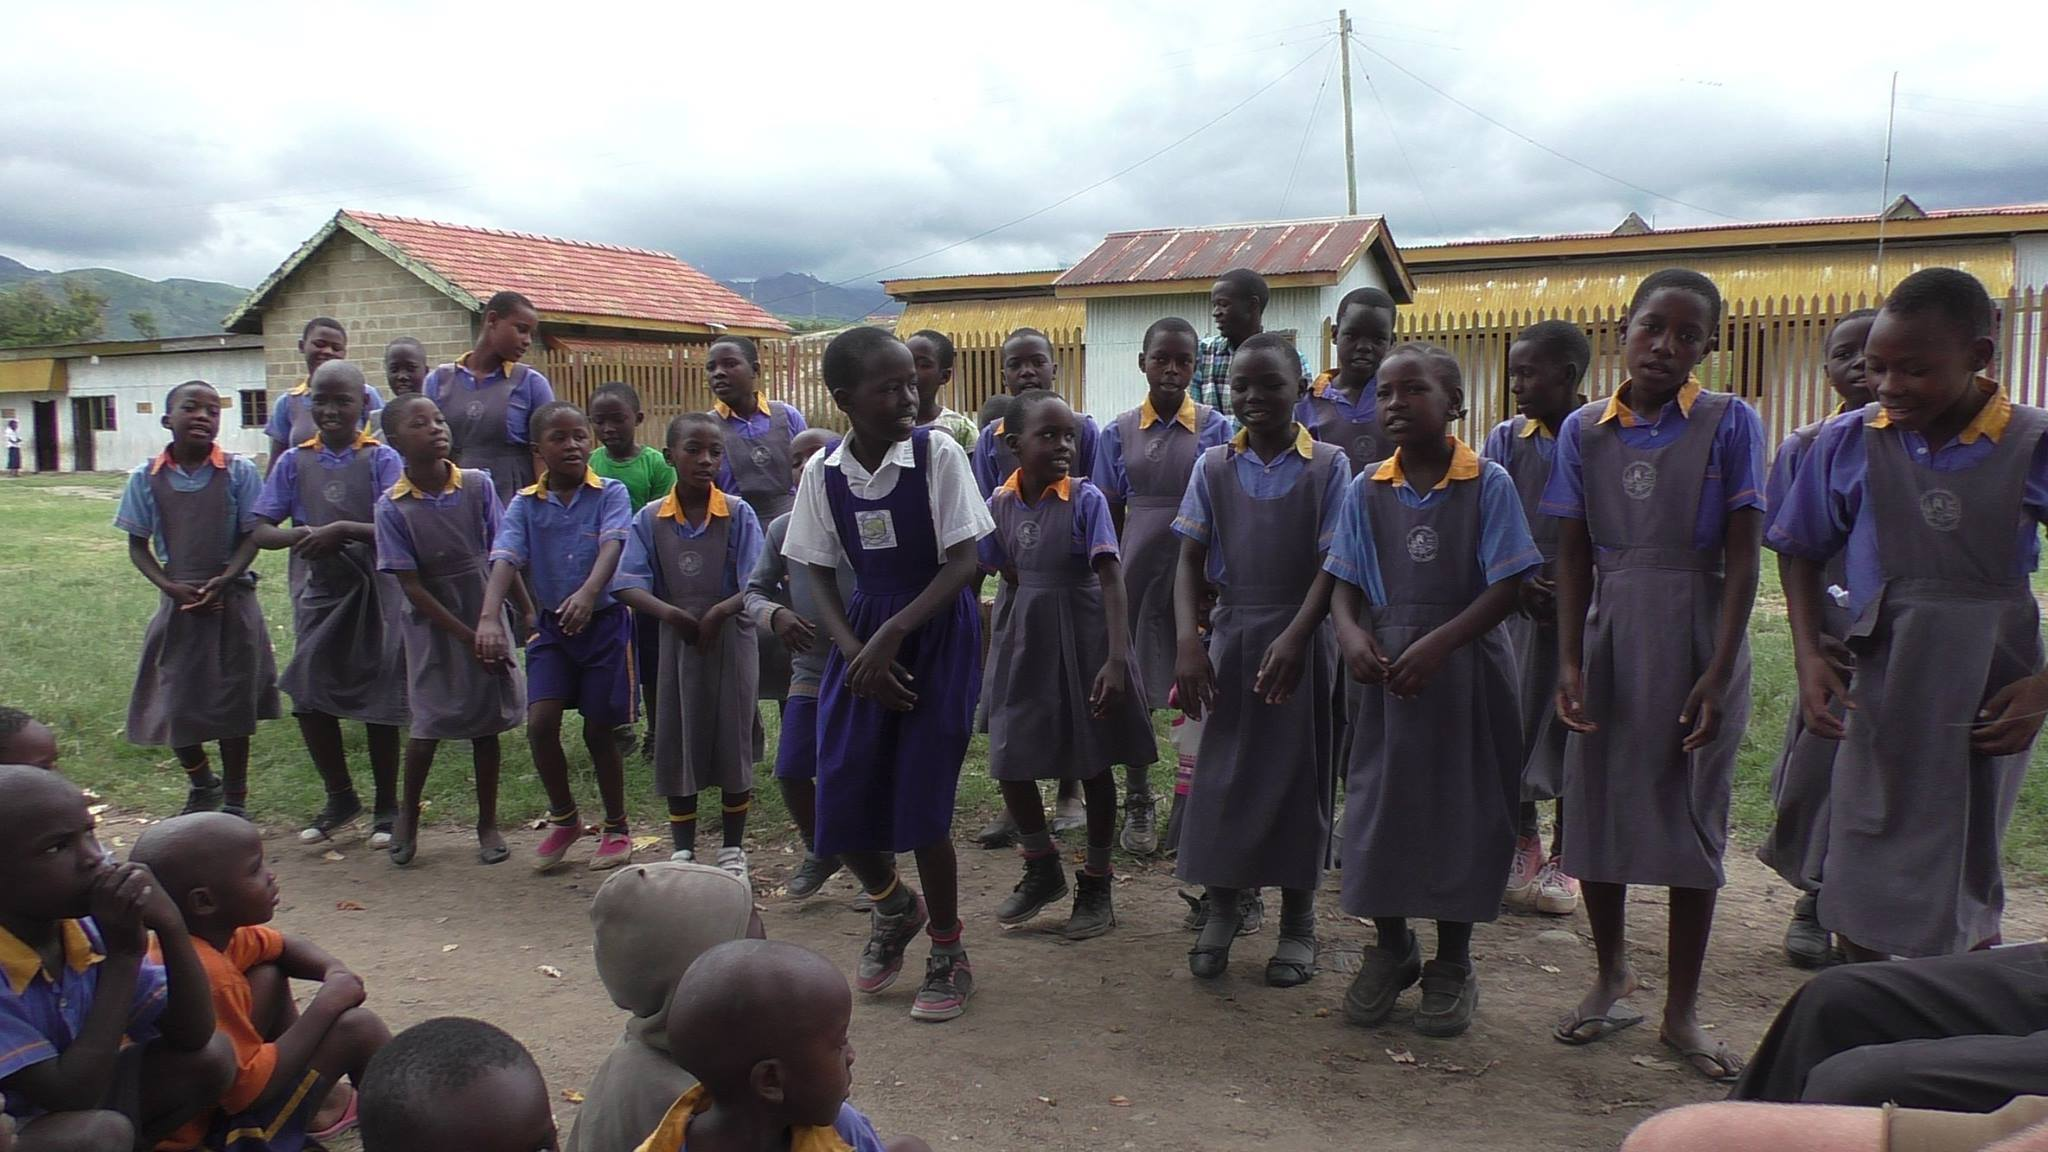 Students of the Kasese Humanist Primary School at the BiZoHa campus.